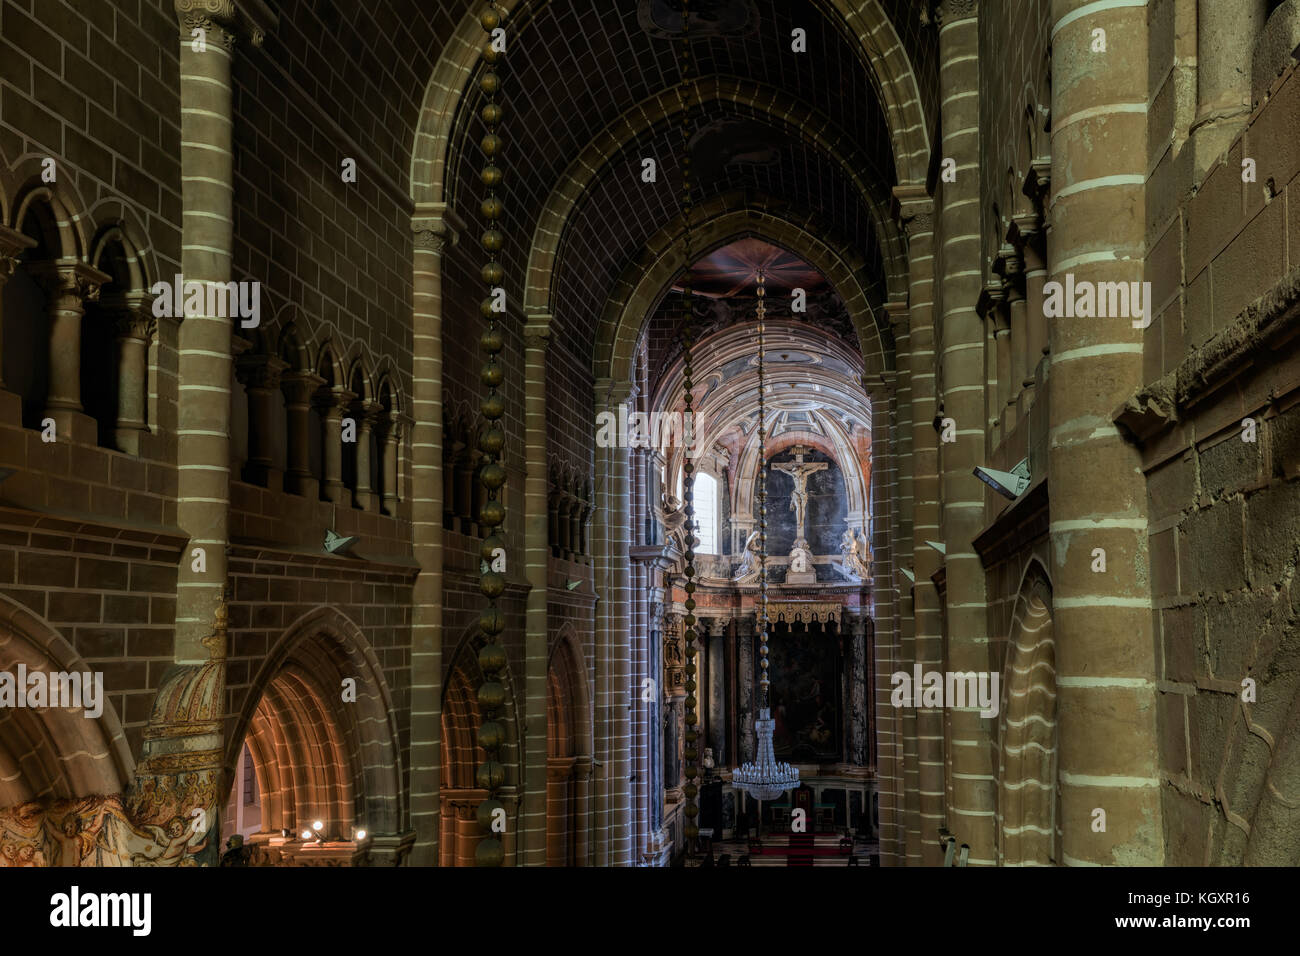 View of the central nave of the Se Cathedral of Evora, Portugal, originated in the 13th century - Stock Image